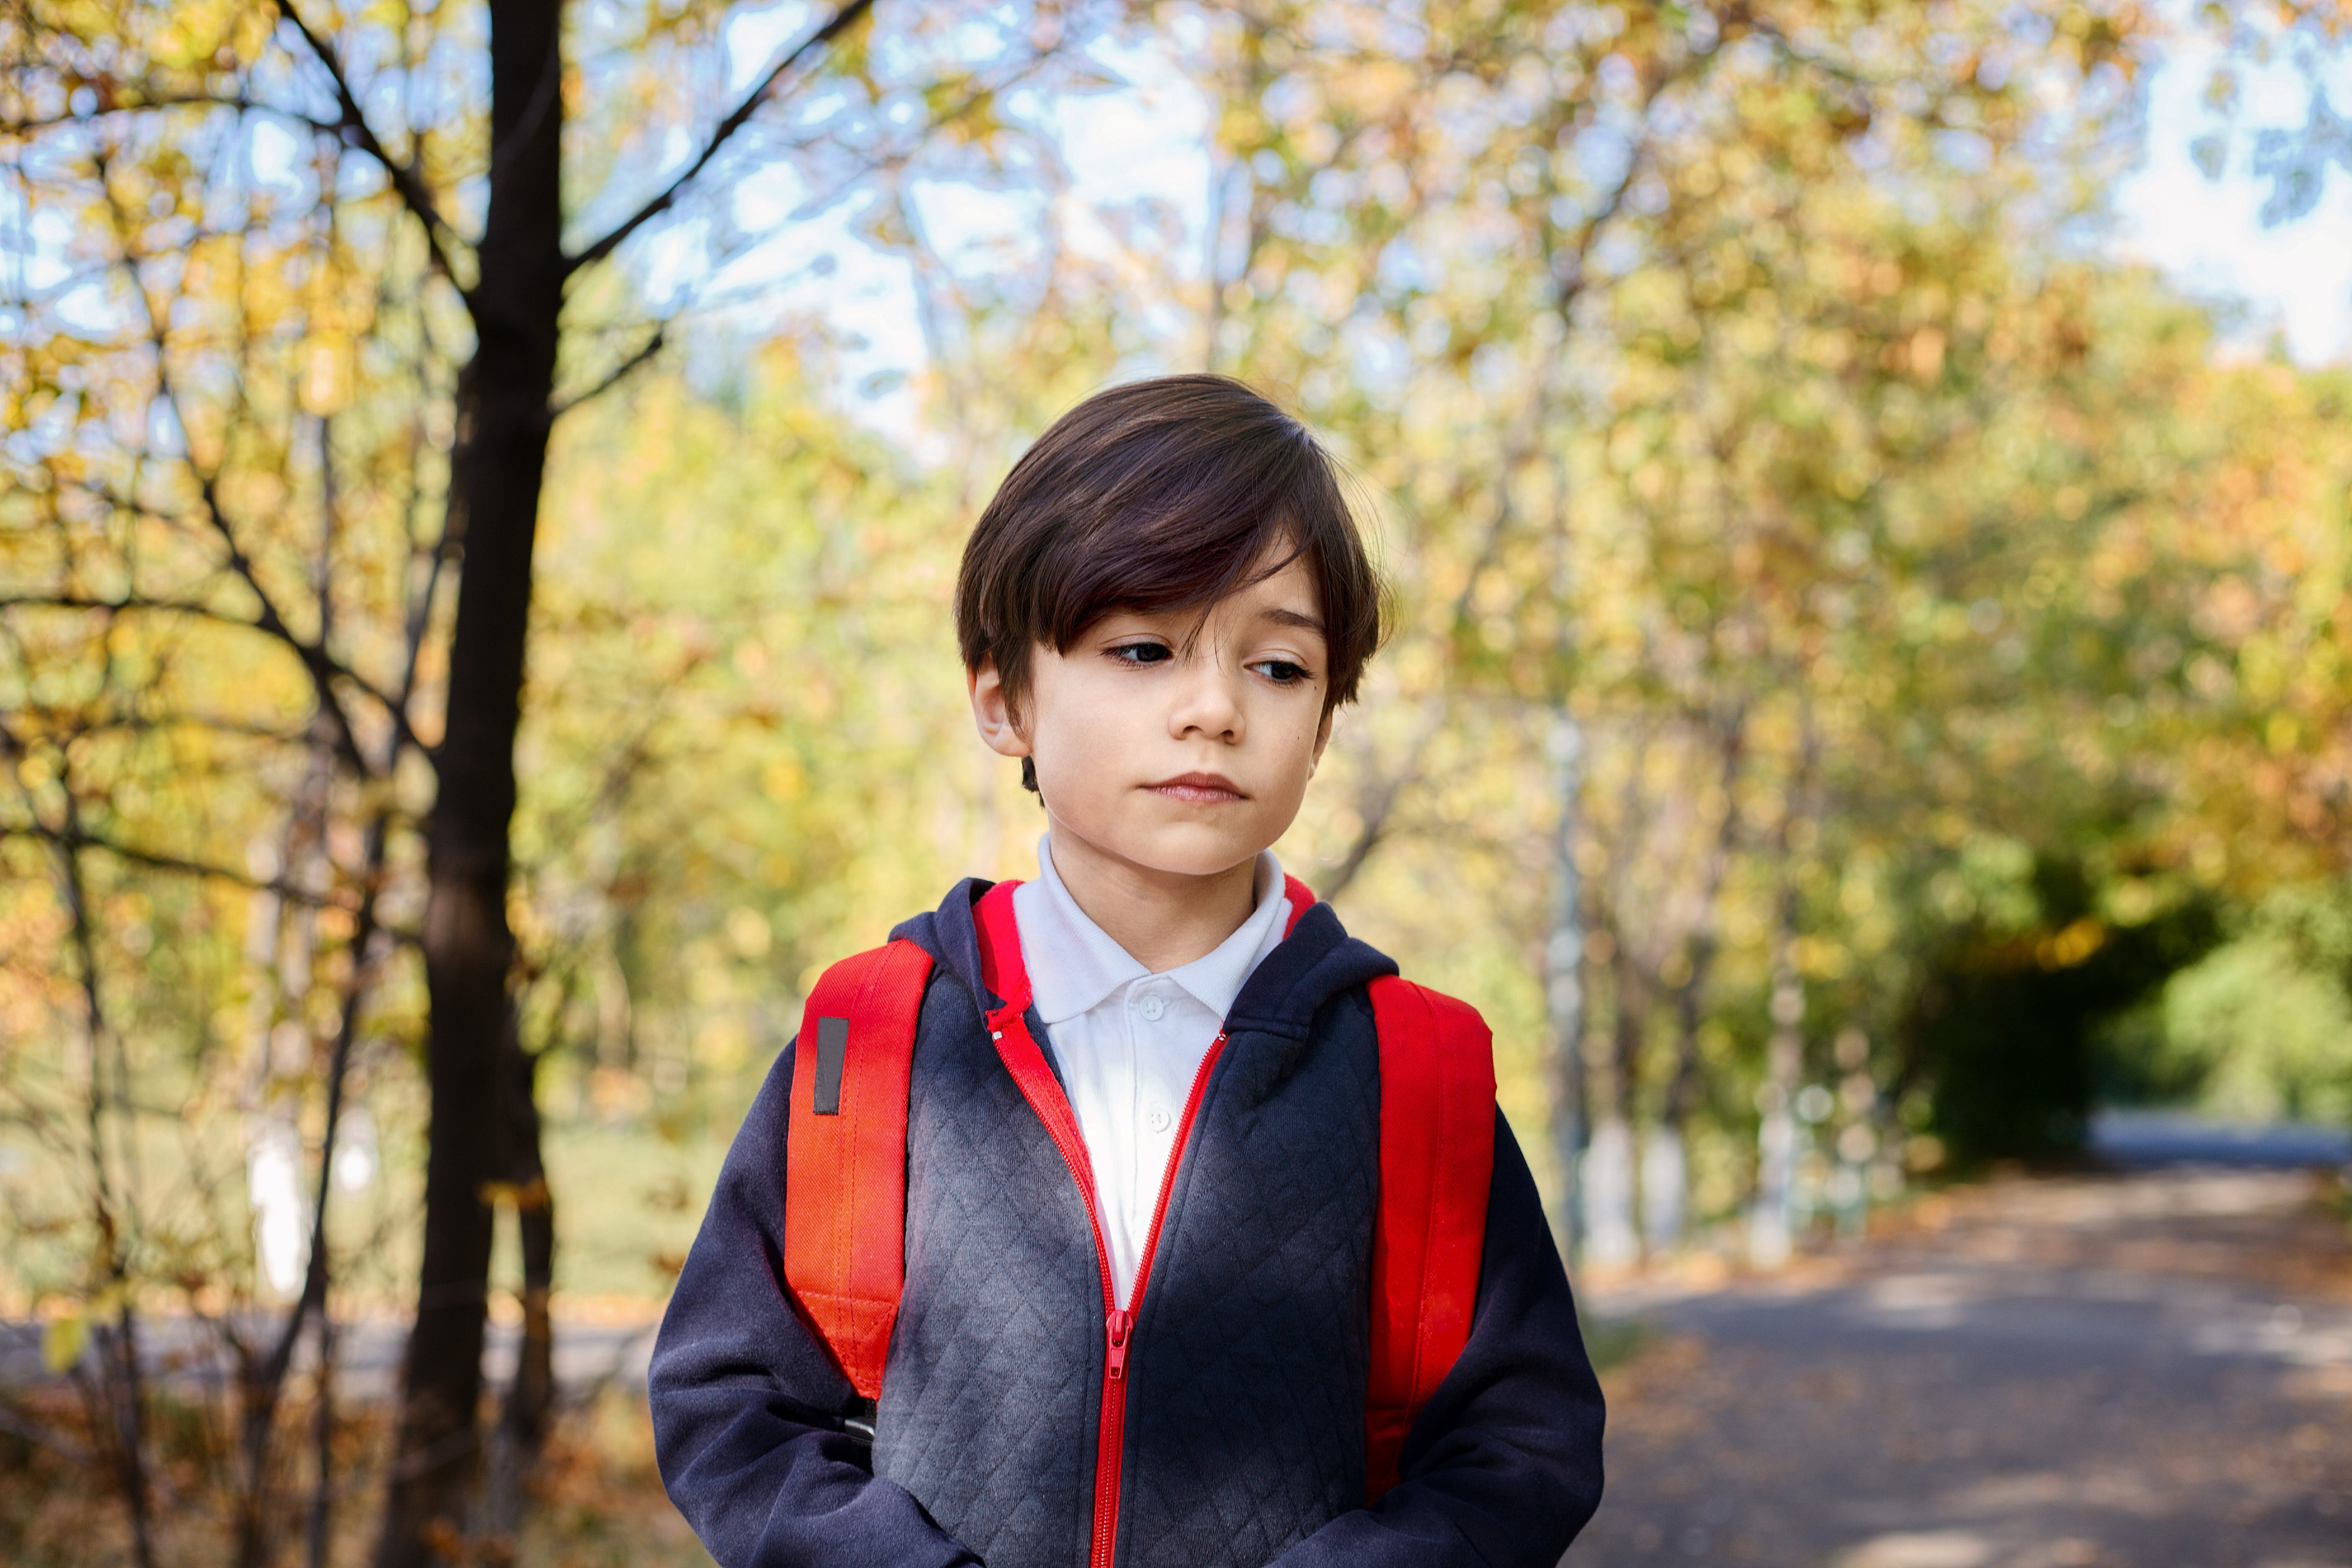 Free stock photo of backpack, boy, city park, jungle